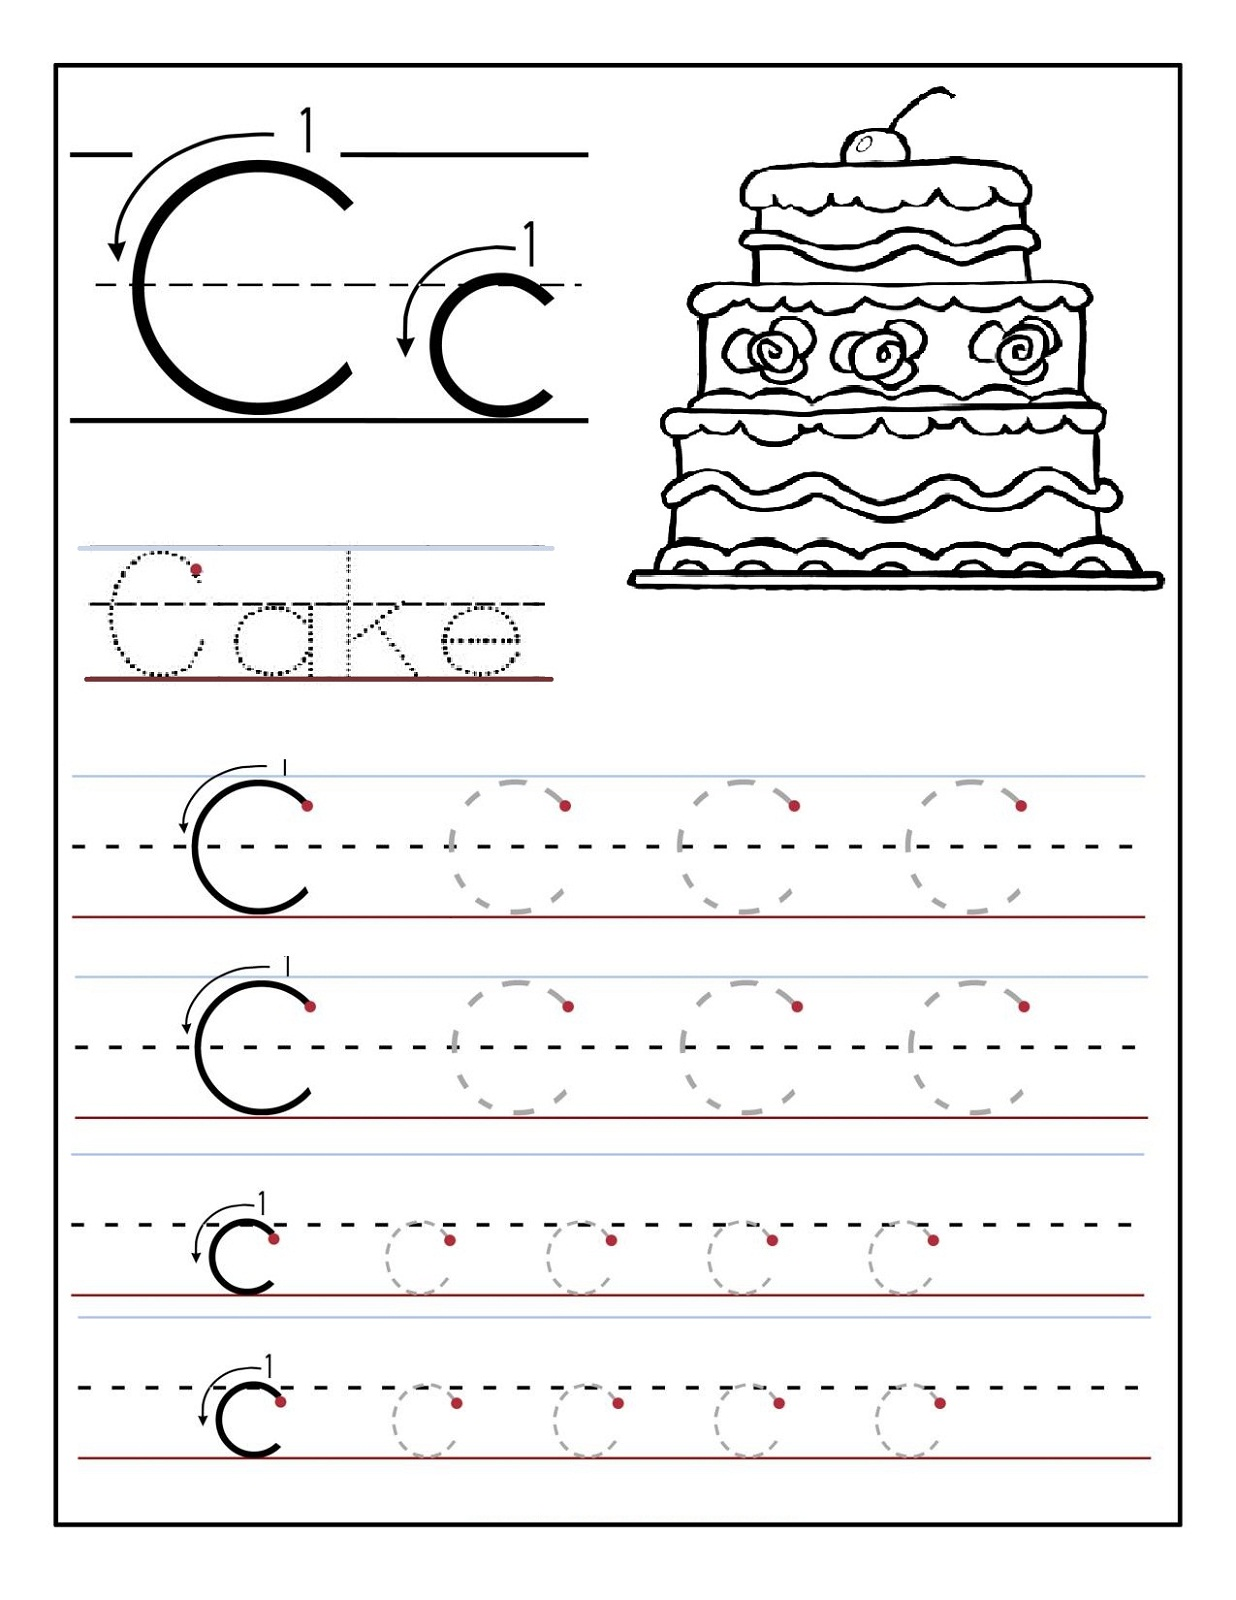 trace-the-letter-c-printable